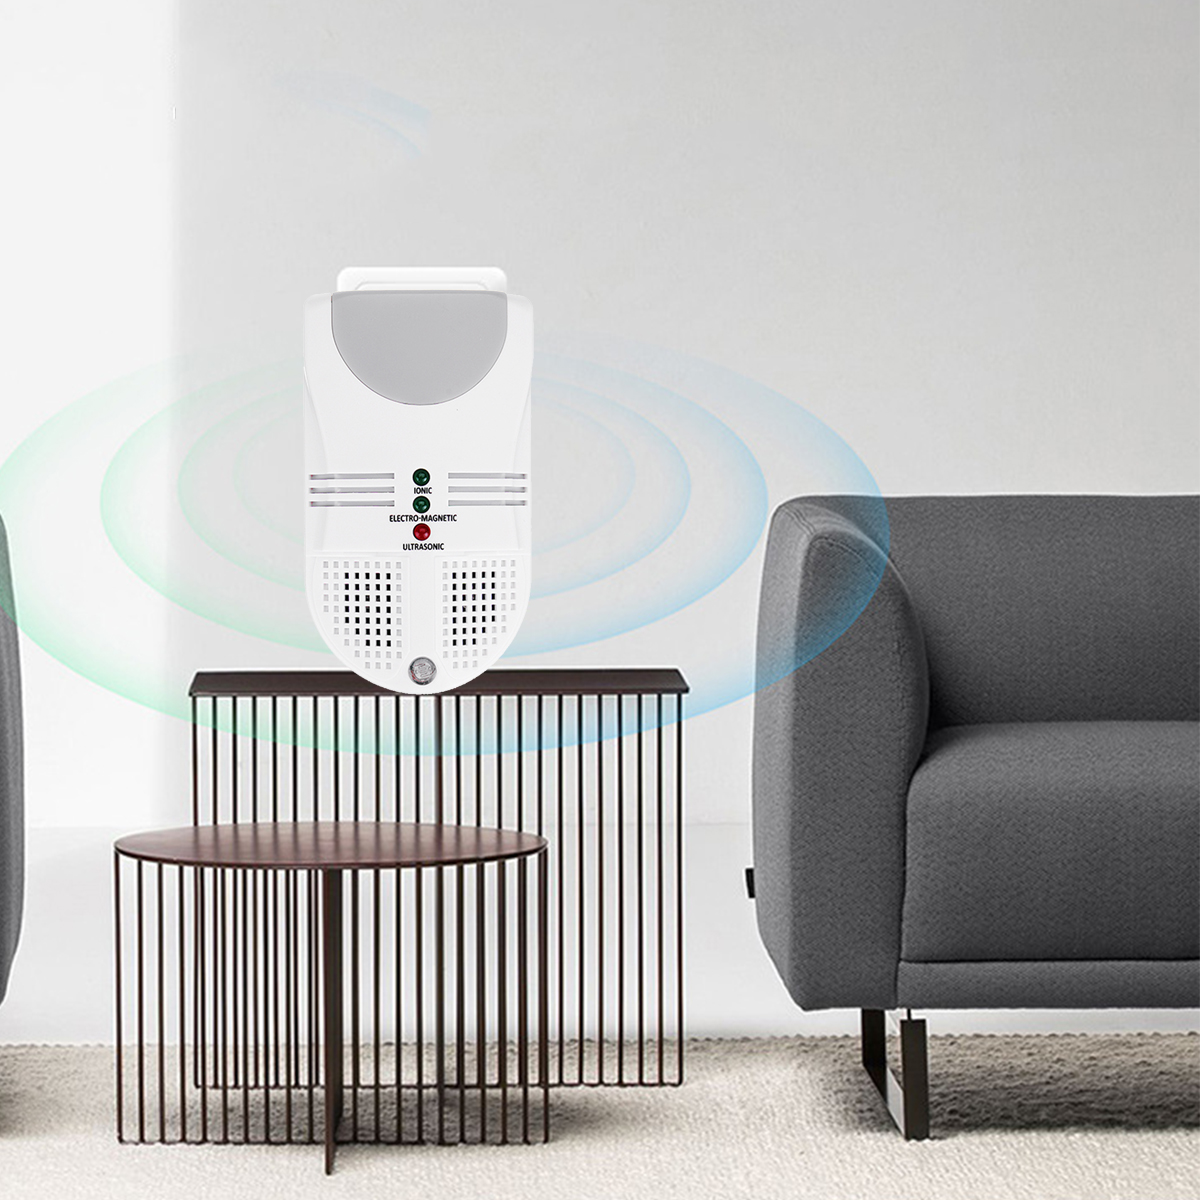 Ultrasonic Mosquito Killer Lamp LED Night Light Electronic Mouse Rat Repeller Pest Insect Fly Bug Reject Control Trap Zapper